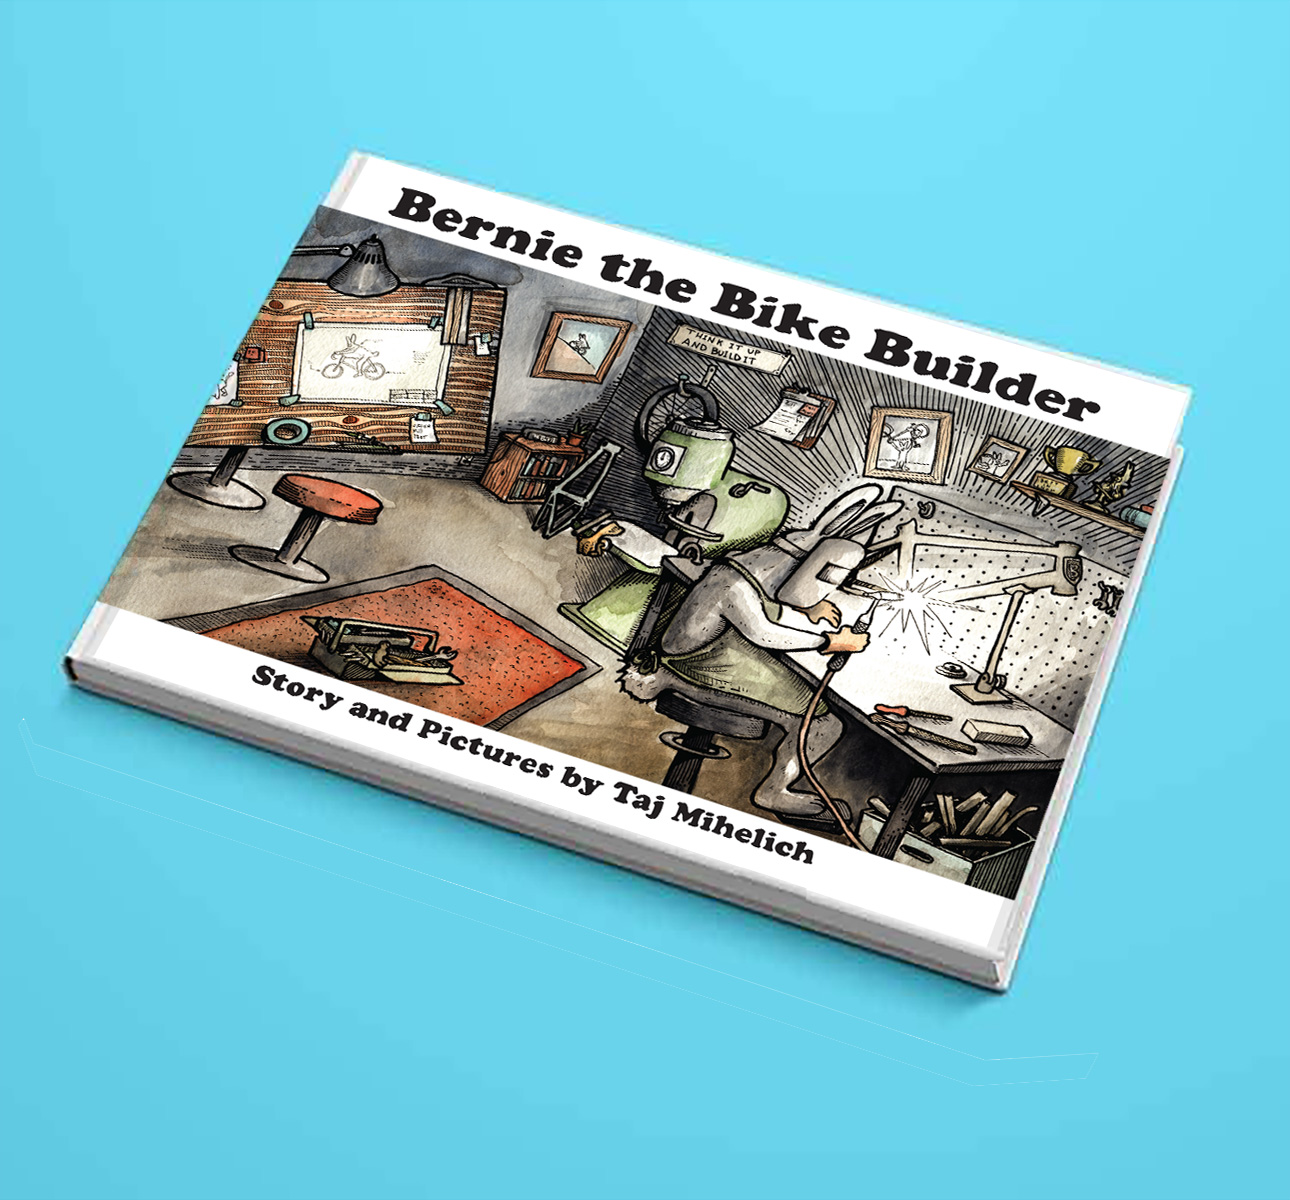 Bernie the Bike Builder